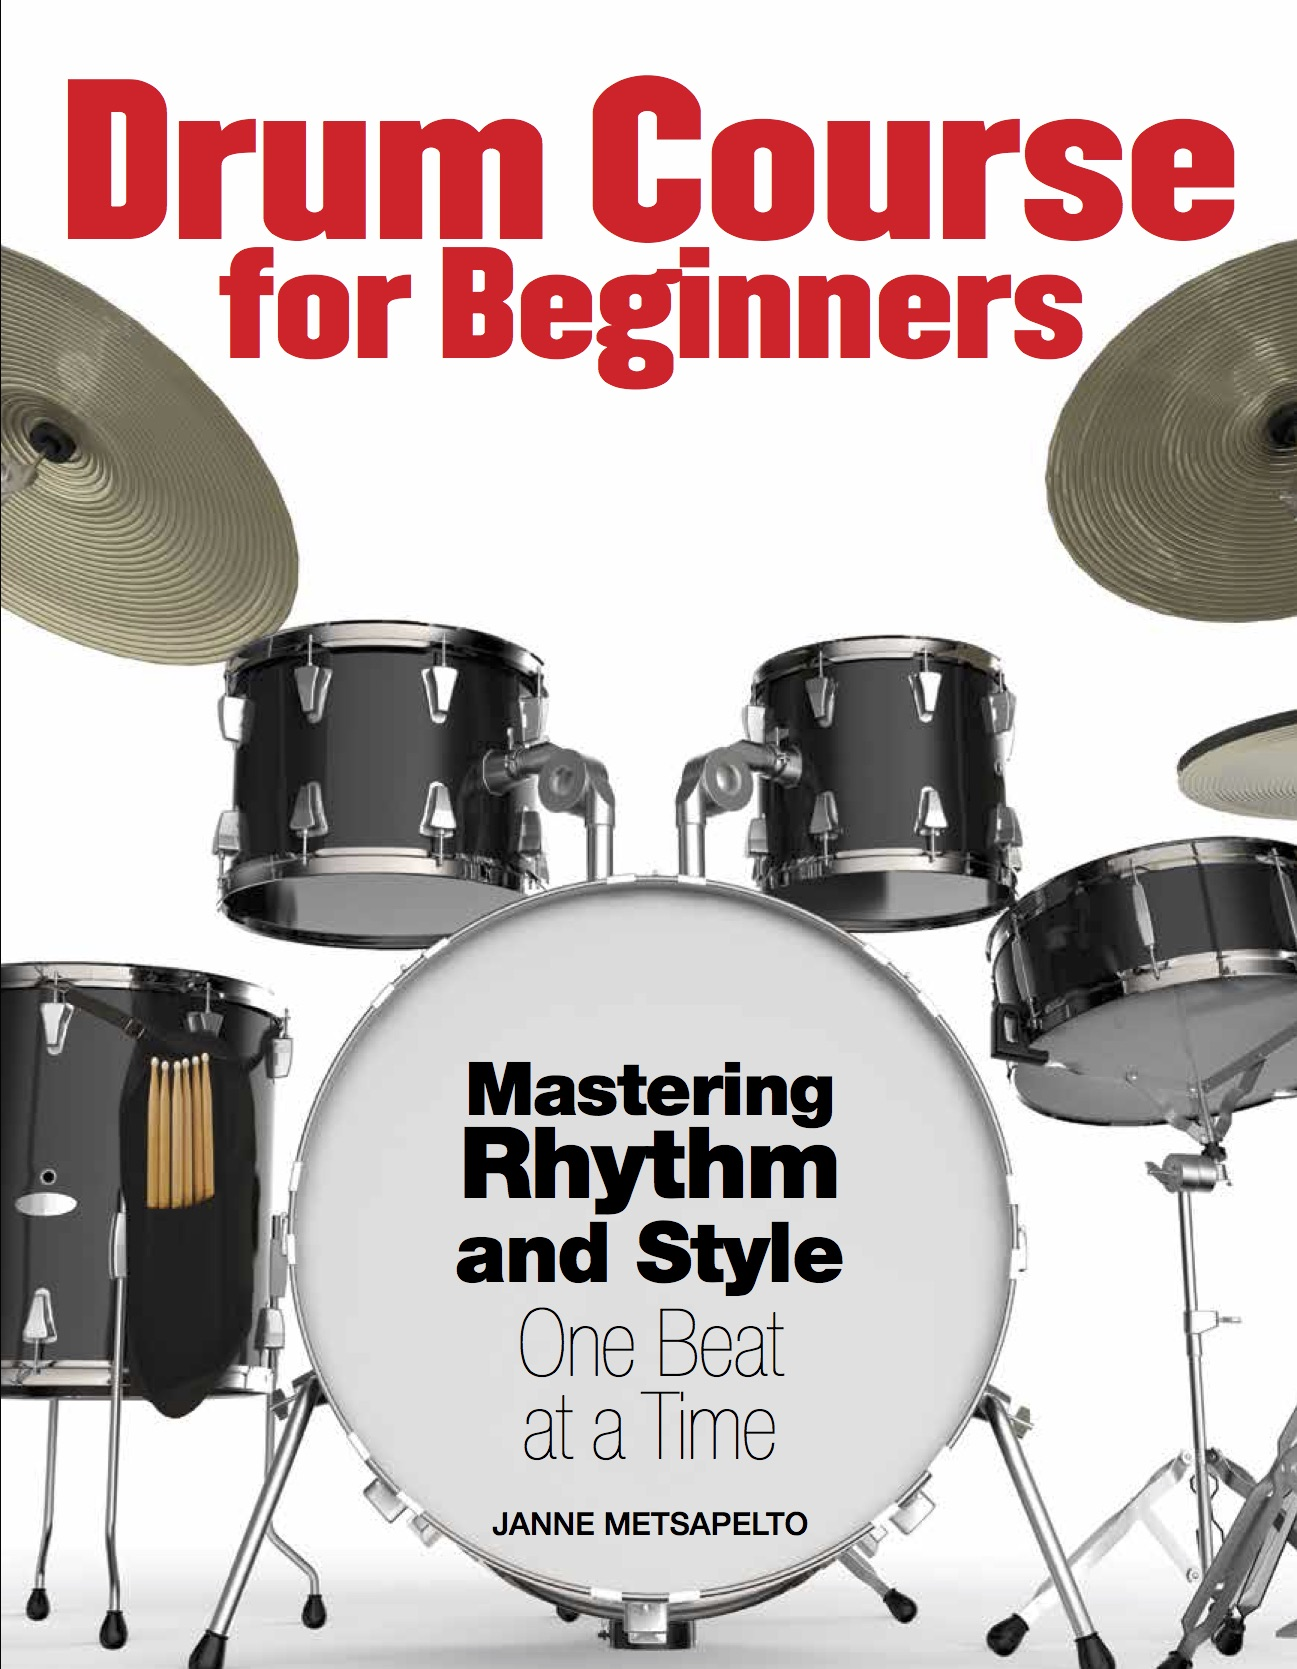 Drum Course for Beginners